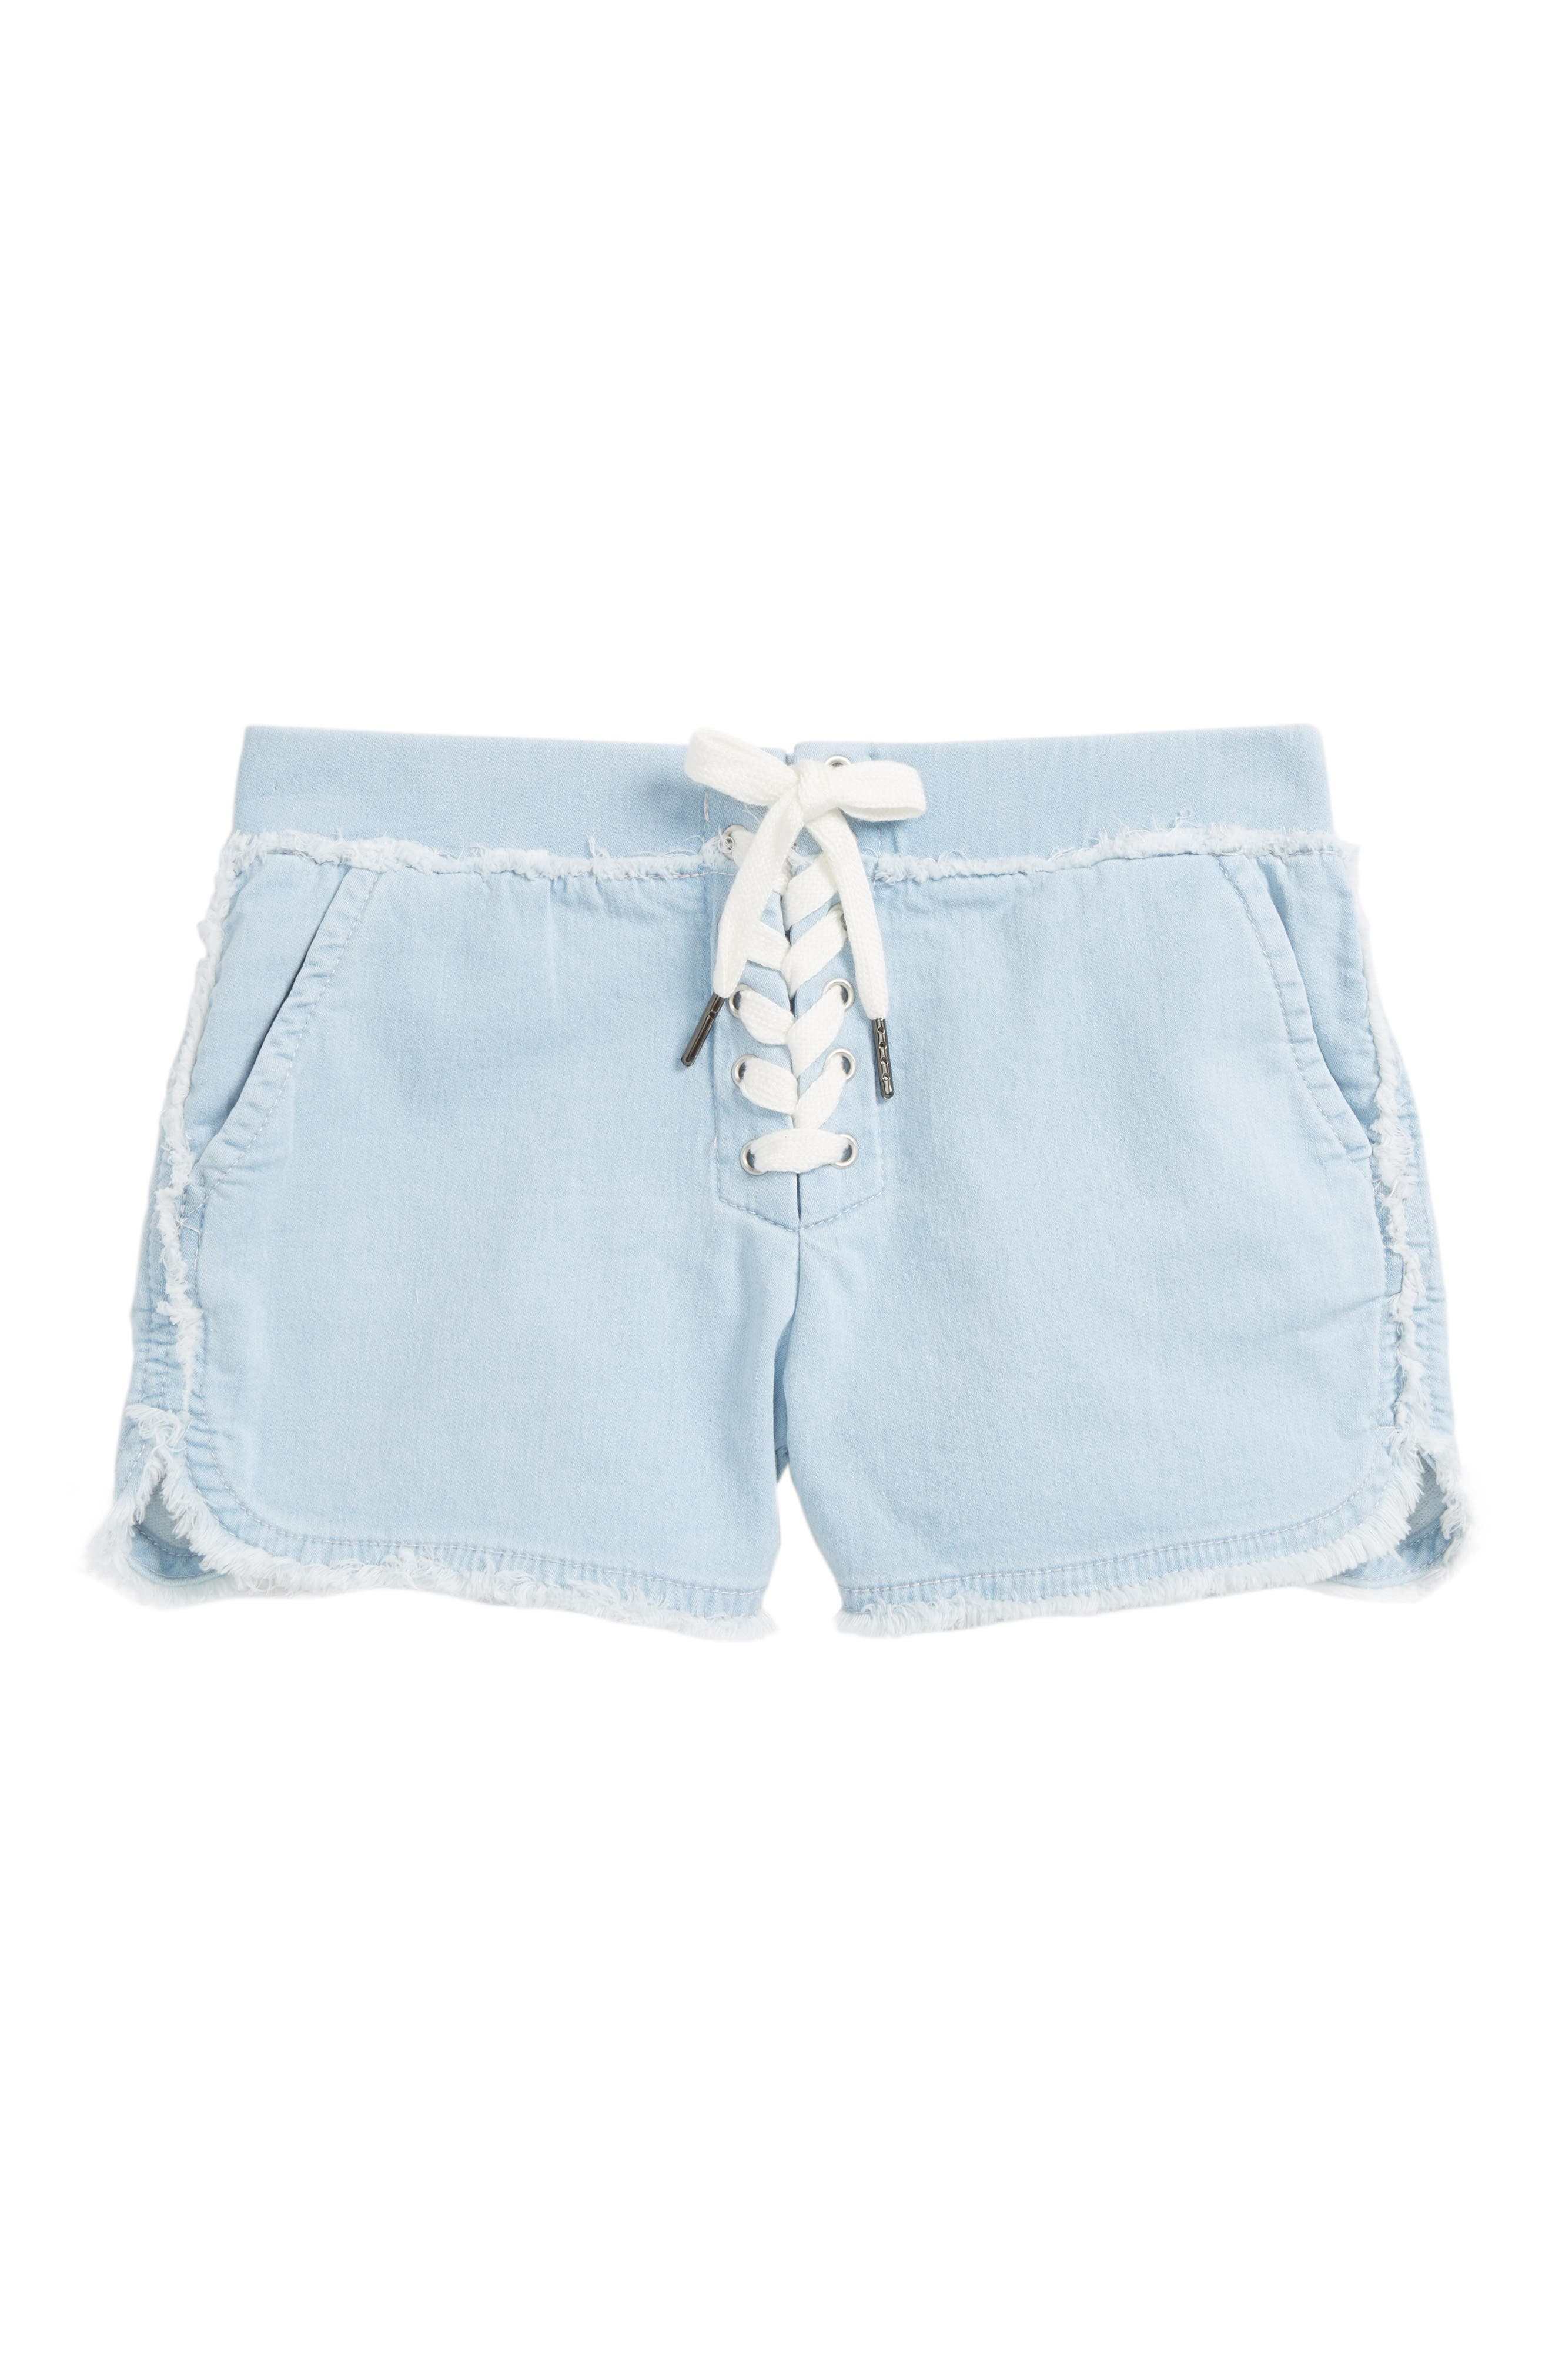 Lace-Up Athletic Chambray Shorts,                         Main,                         color, Light Blue